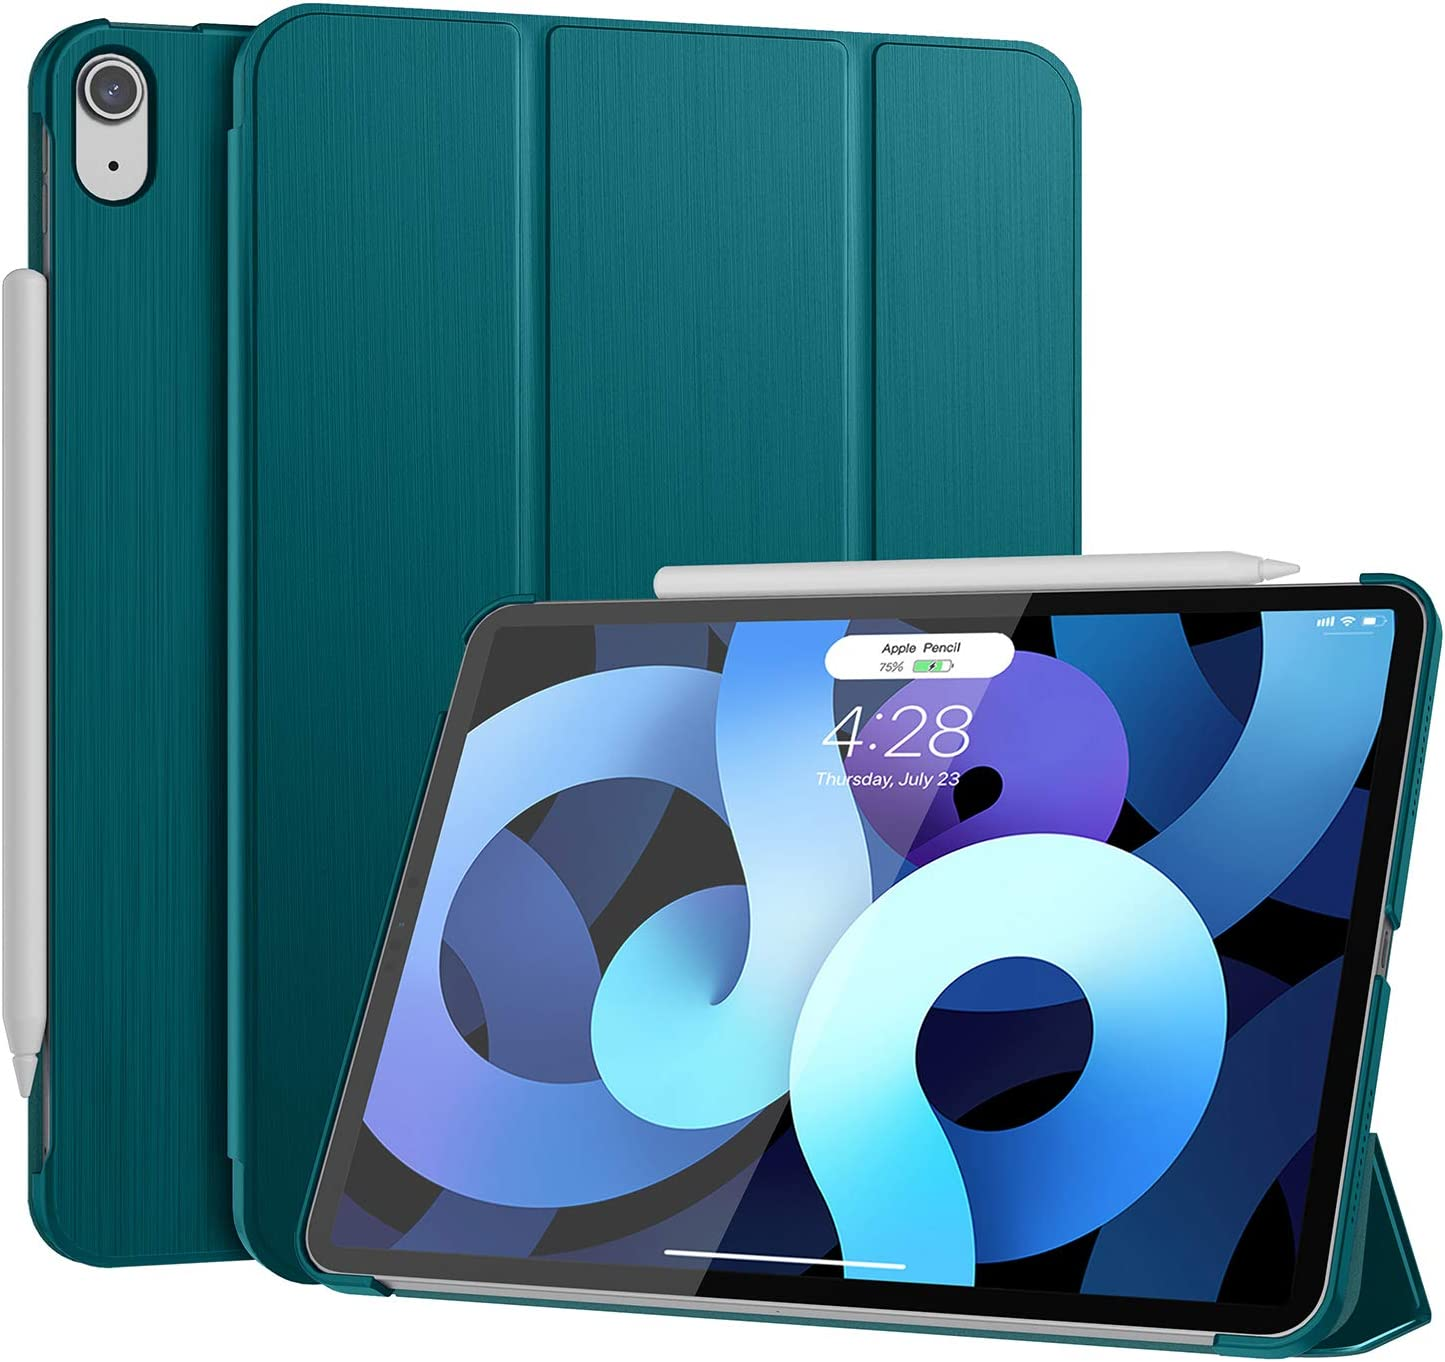 Soke New iPad Air 4 Case 2020, iPad Air 4th Generation Case 10.9 Inch - [Full Body Protection][Trifold Stand Lightweight Case] [Auto Sleep/Wake Cover] [Convenient Magnetic Attachment], Teal